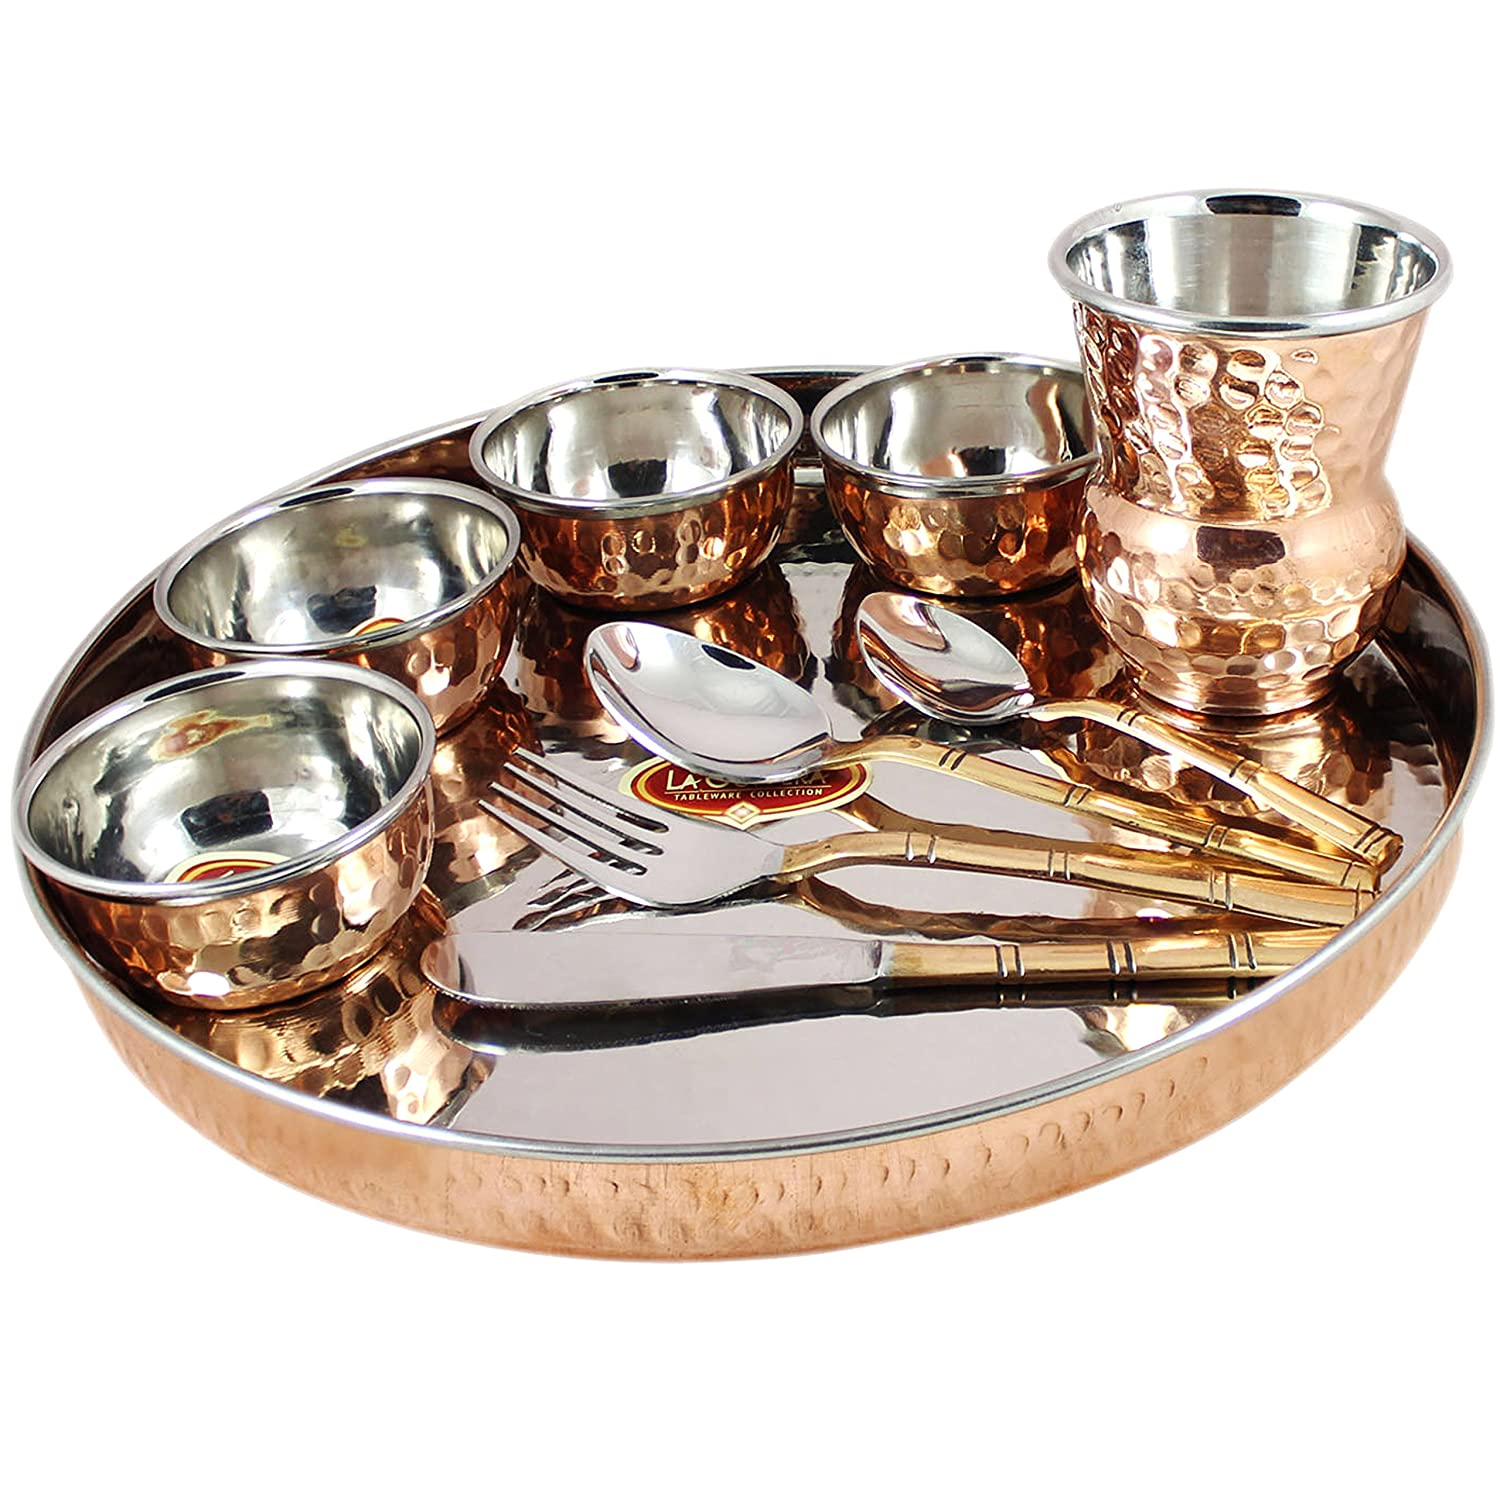 Amazon.com | Indian Dinnerware Set Copper Stainless Steel Thali Plate Set Diameter 12 Inch Dinner Plates  sc 1 st  Amazon.com & Amazon.com | Indian Dinnerware Set Copper Stainless Steel Thali ...